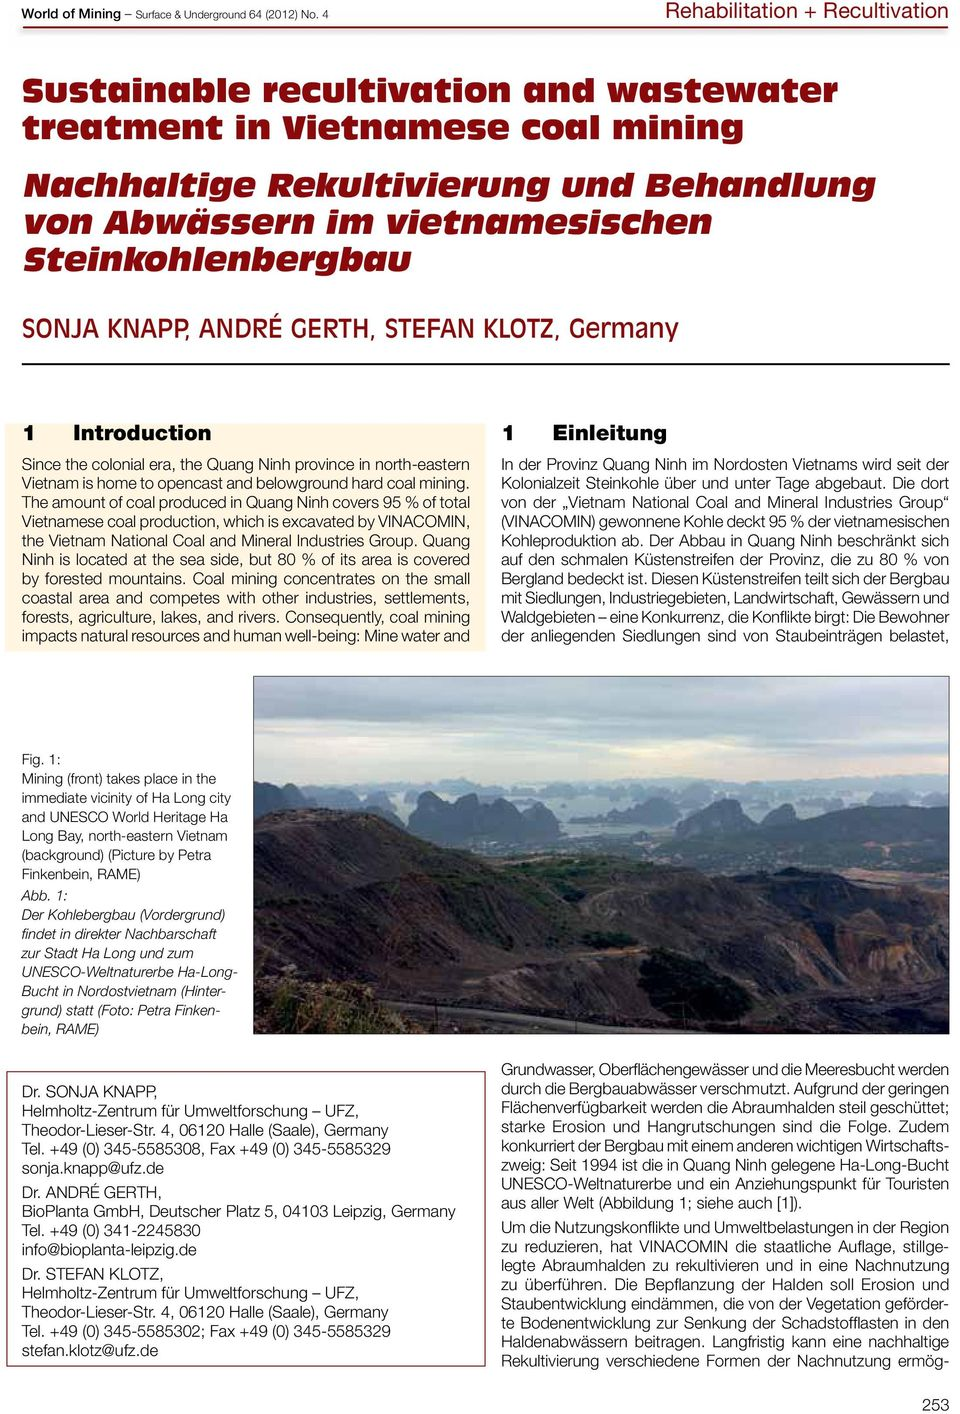 Steinkohlenbergbau Sonja Knapp, André Gerth, Stefan Klotz, Germany 1 Introduction Since the colonial era, the Quang Ninh province in north-eastern Vietnam is home to opencast and belowground hard